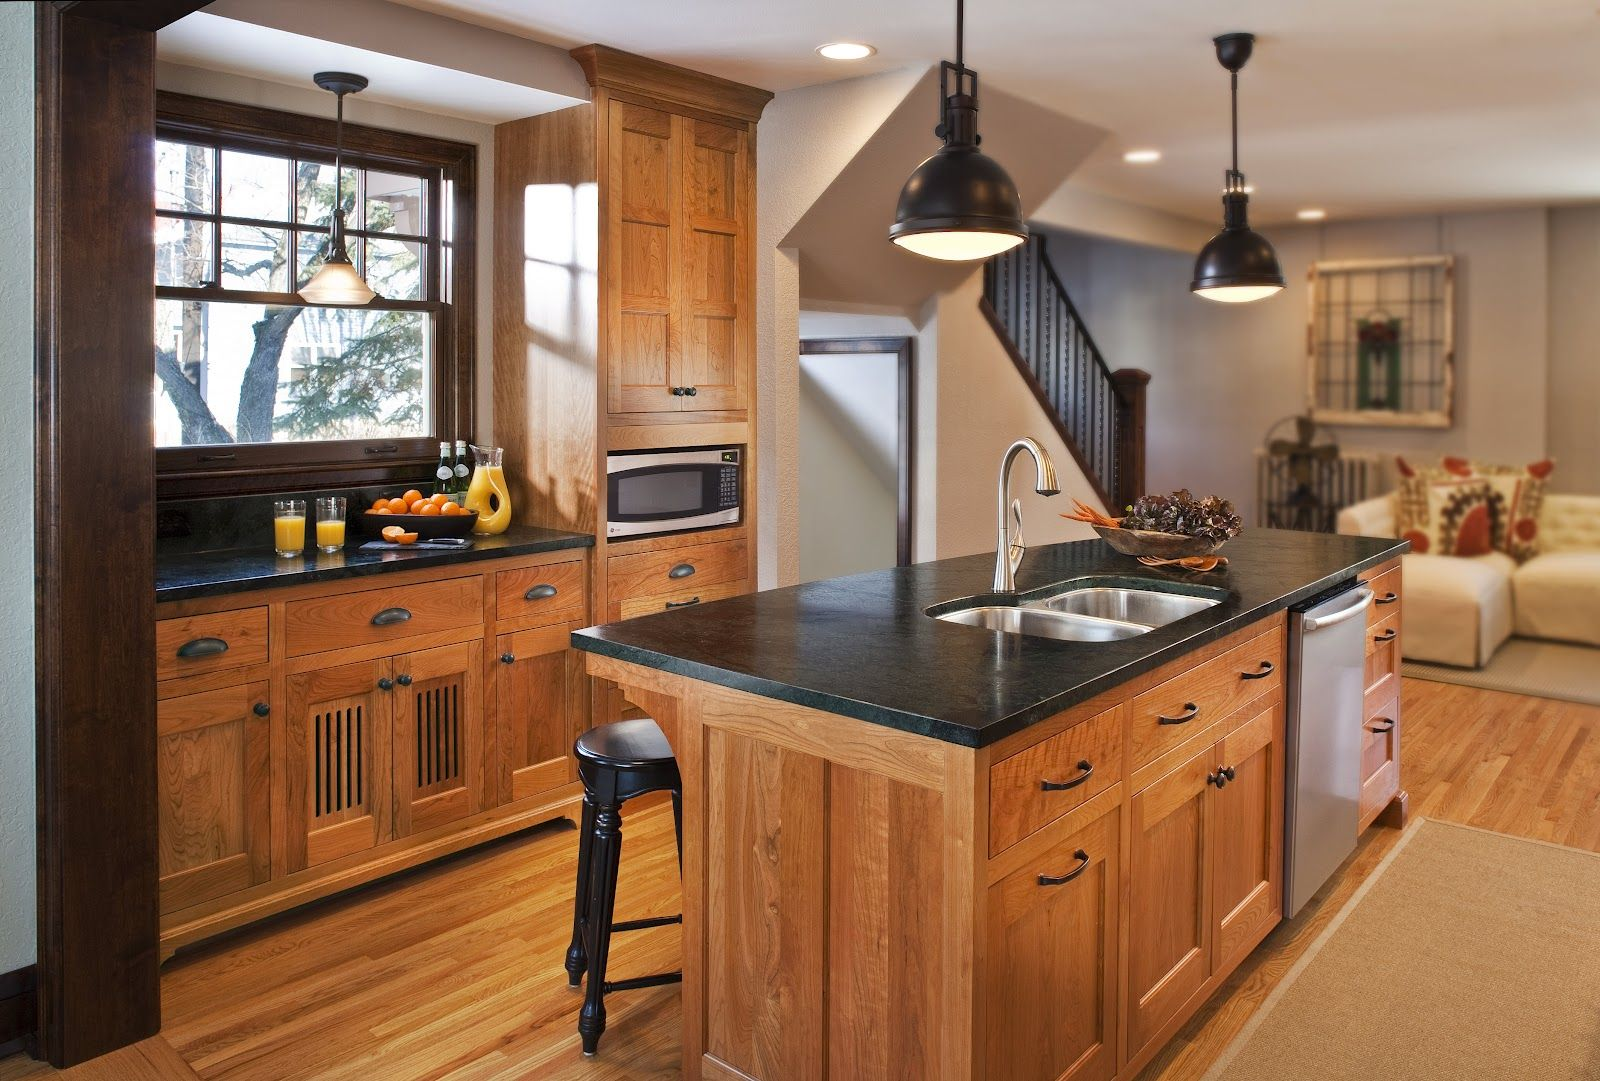 Green Soapstone Countertops Natural Oak Cabinets With Soapstone Counter Tops